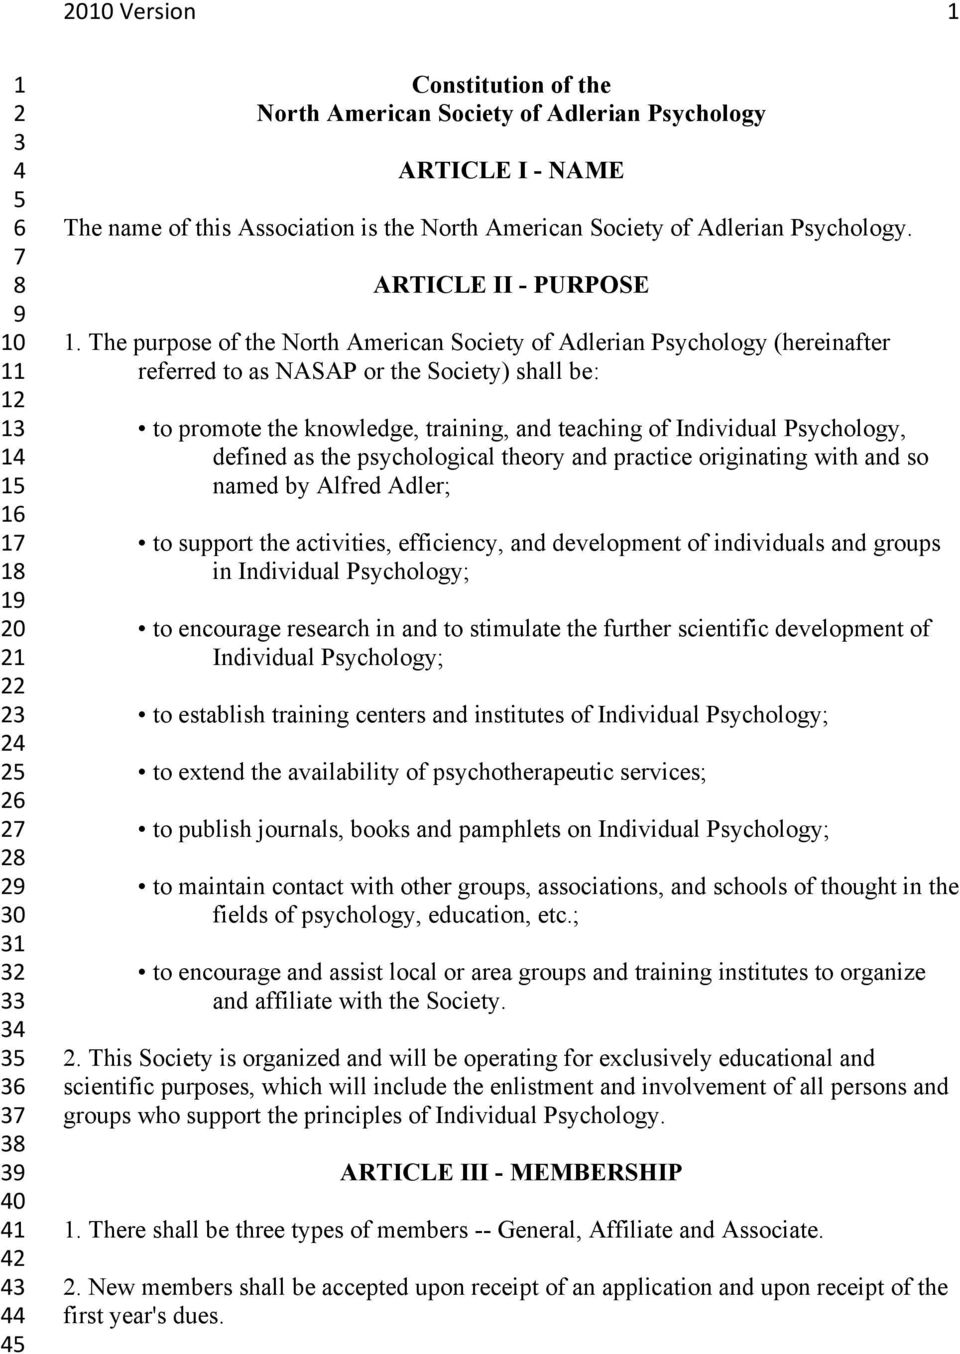 The purpose of the North American Society of Adlerian Psychology (hereinafter referred to as NASAP or the Society) shall be: to promote the knowledge, training, and teaching of Individual Psychology,